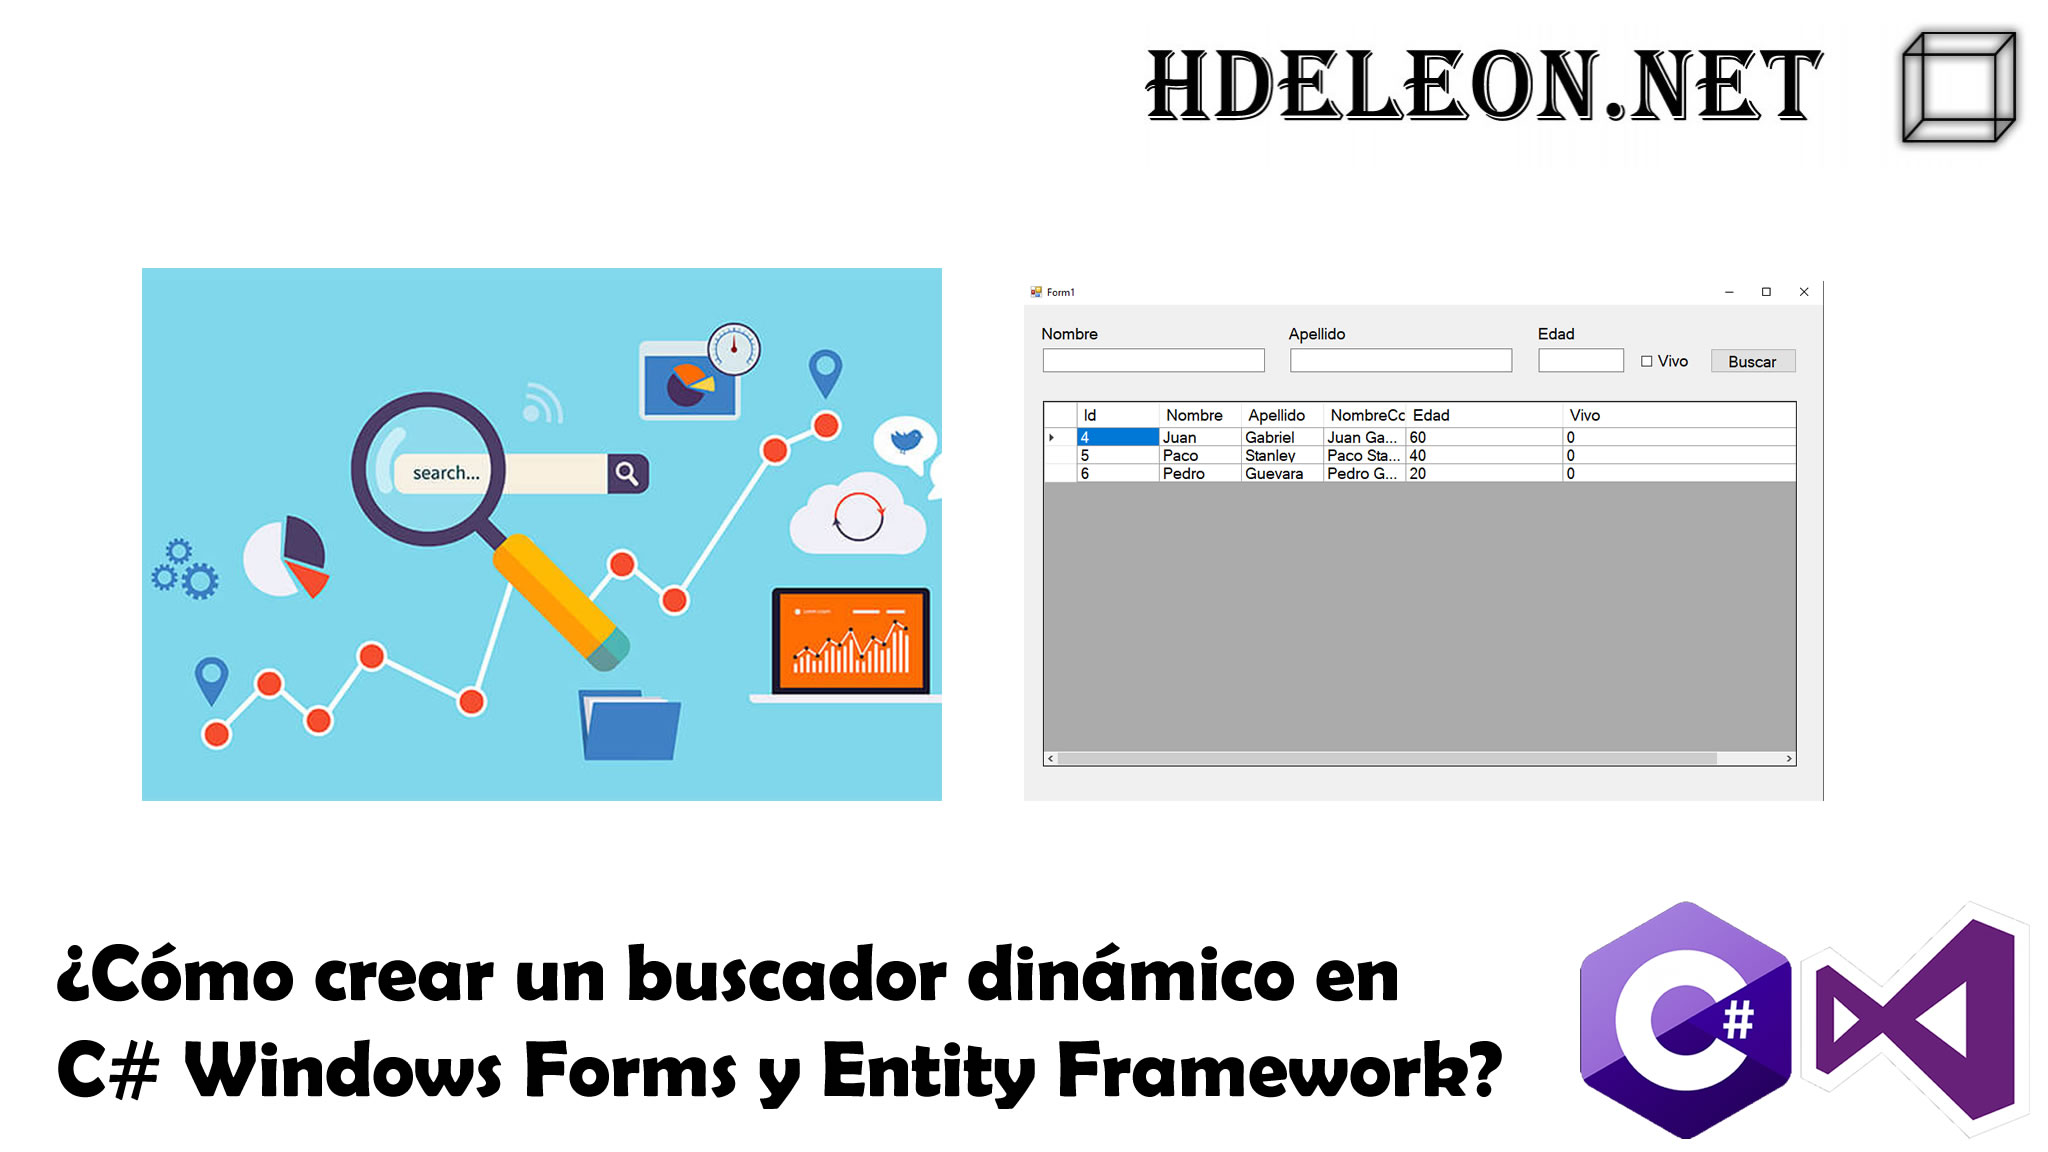 Buscador dinámico en C# .Net Windows Forms